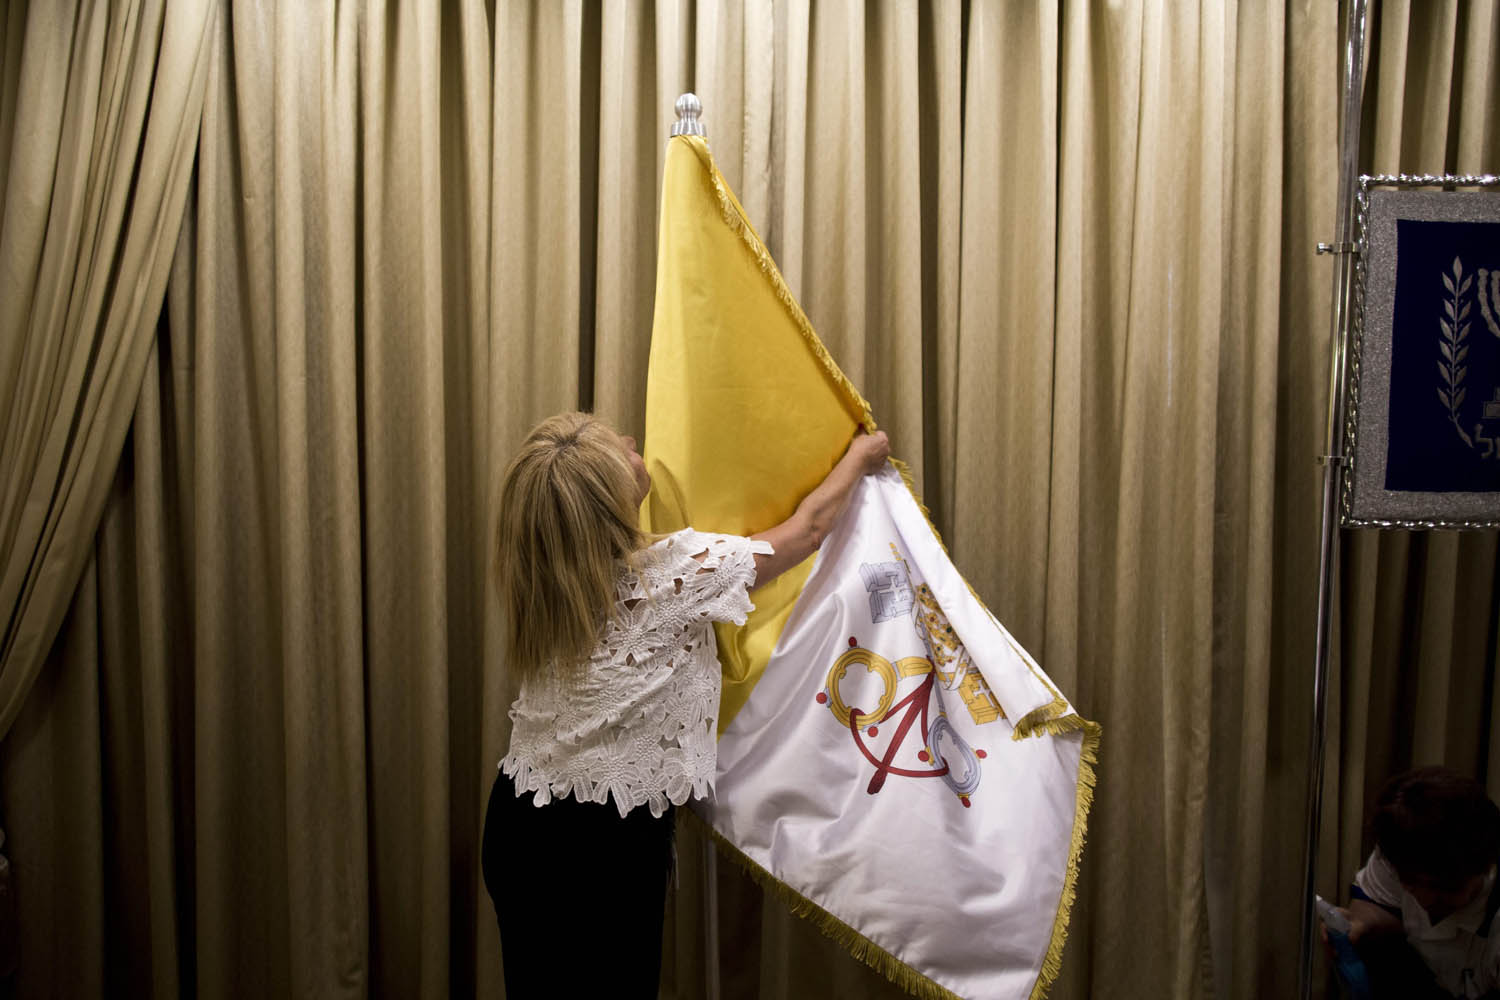 May 22, 2014. A worker at the Israeli President's Residence holds the flag of Vatican City in preparations for Pope Francis' visit to Jerusalem, Israel.